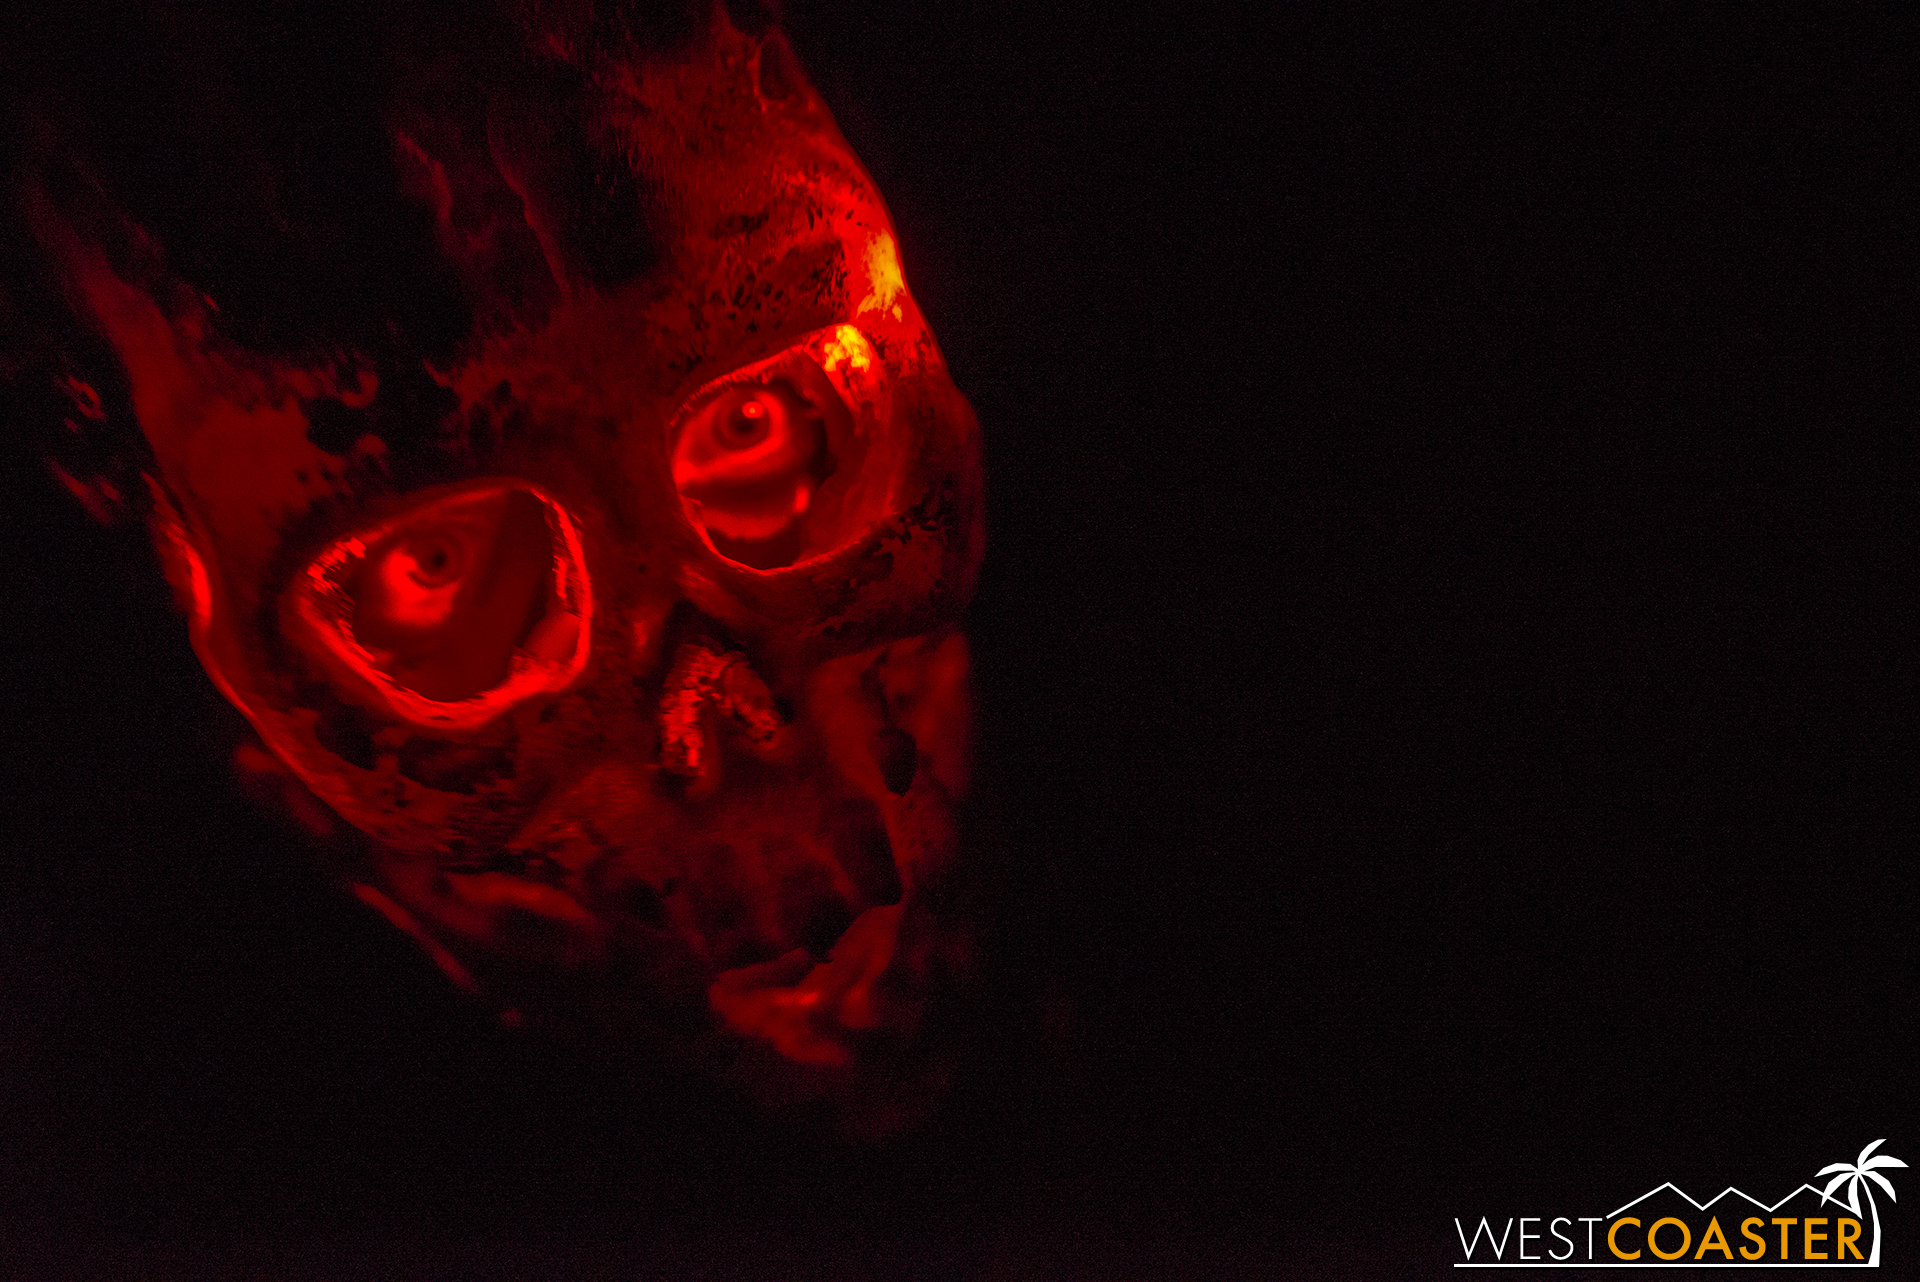 Some of the monsters in the darkness have some fantastic-looking glowing red skulls.